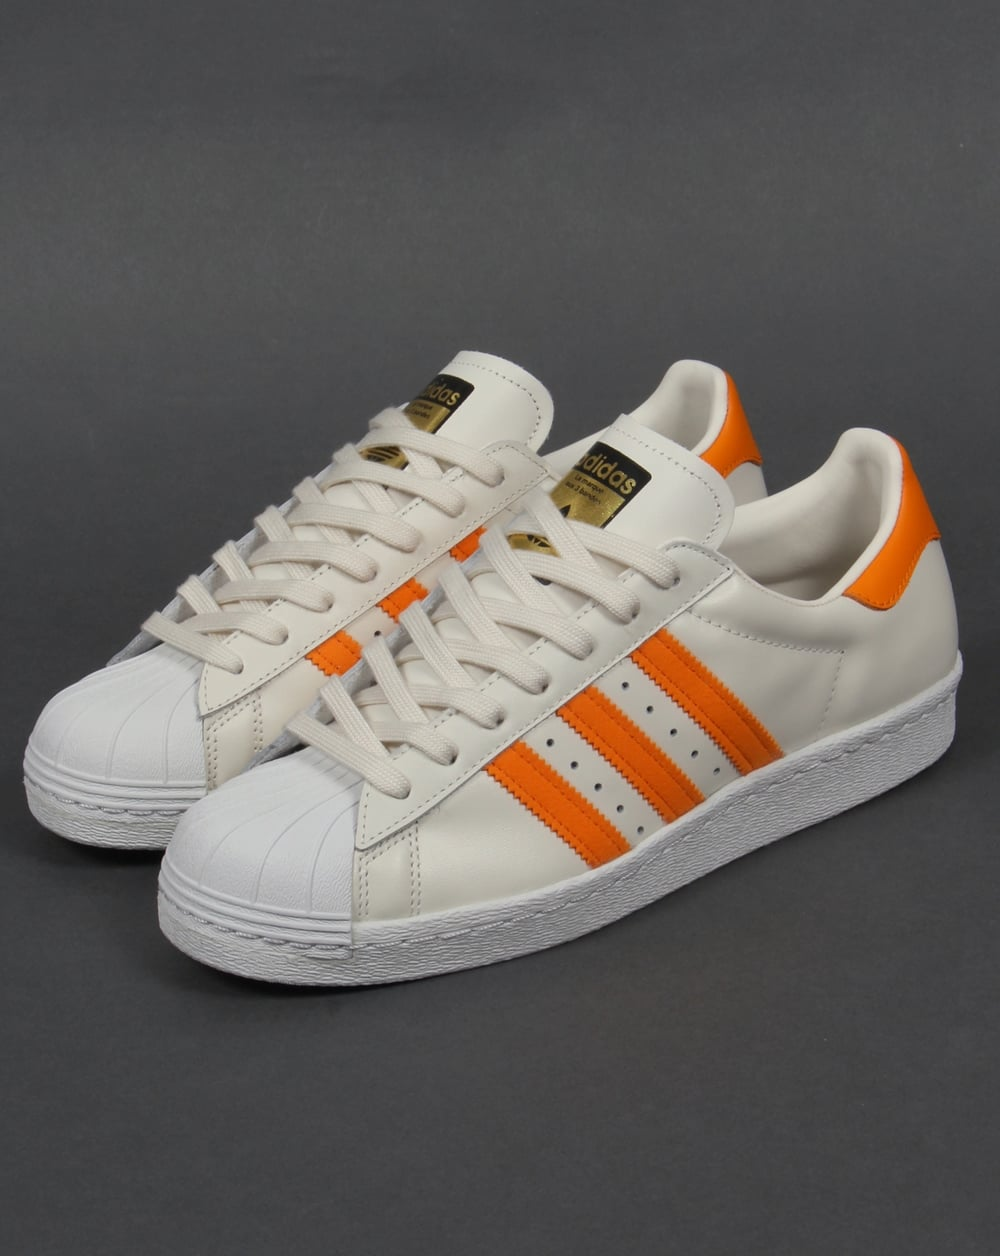 adidas superstar 80s trainers off white orange originals shell toe shoe. Black Bedroom Furniture Sets. Home Design Ideas